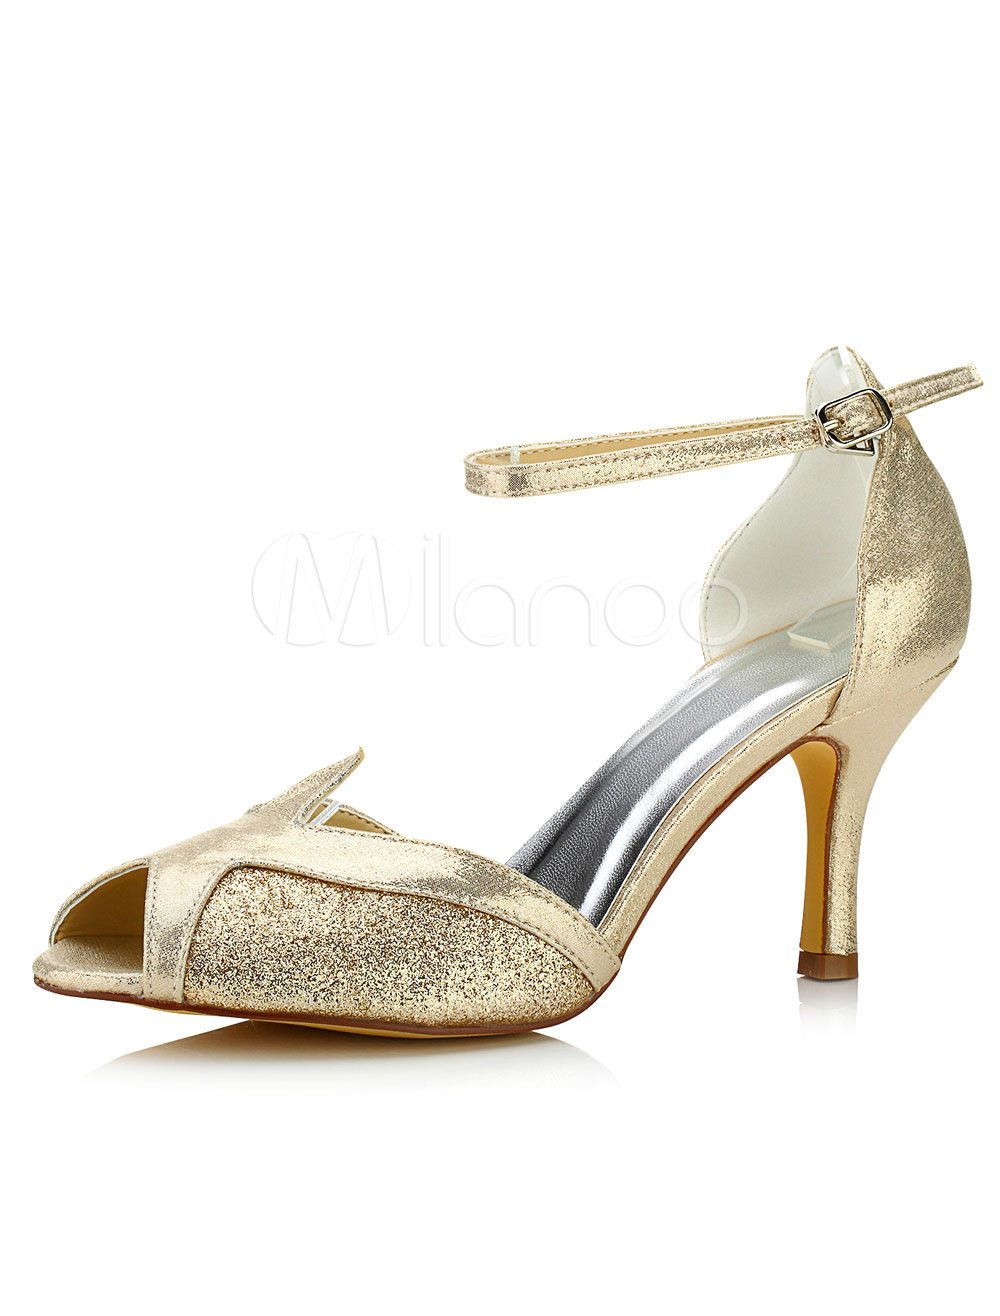 Buy Champagne Wedding Shoes High Heel Peep Ankle Strap Glitter Bridal Shoes for $51.29 in Milanoo store